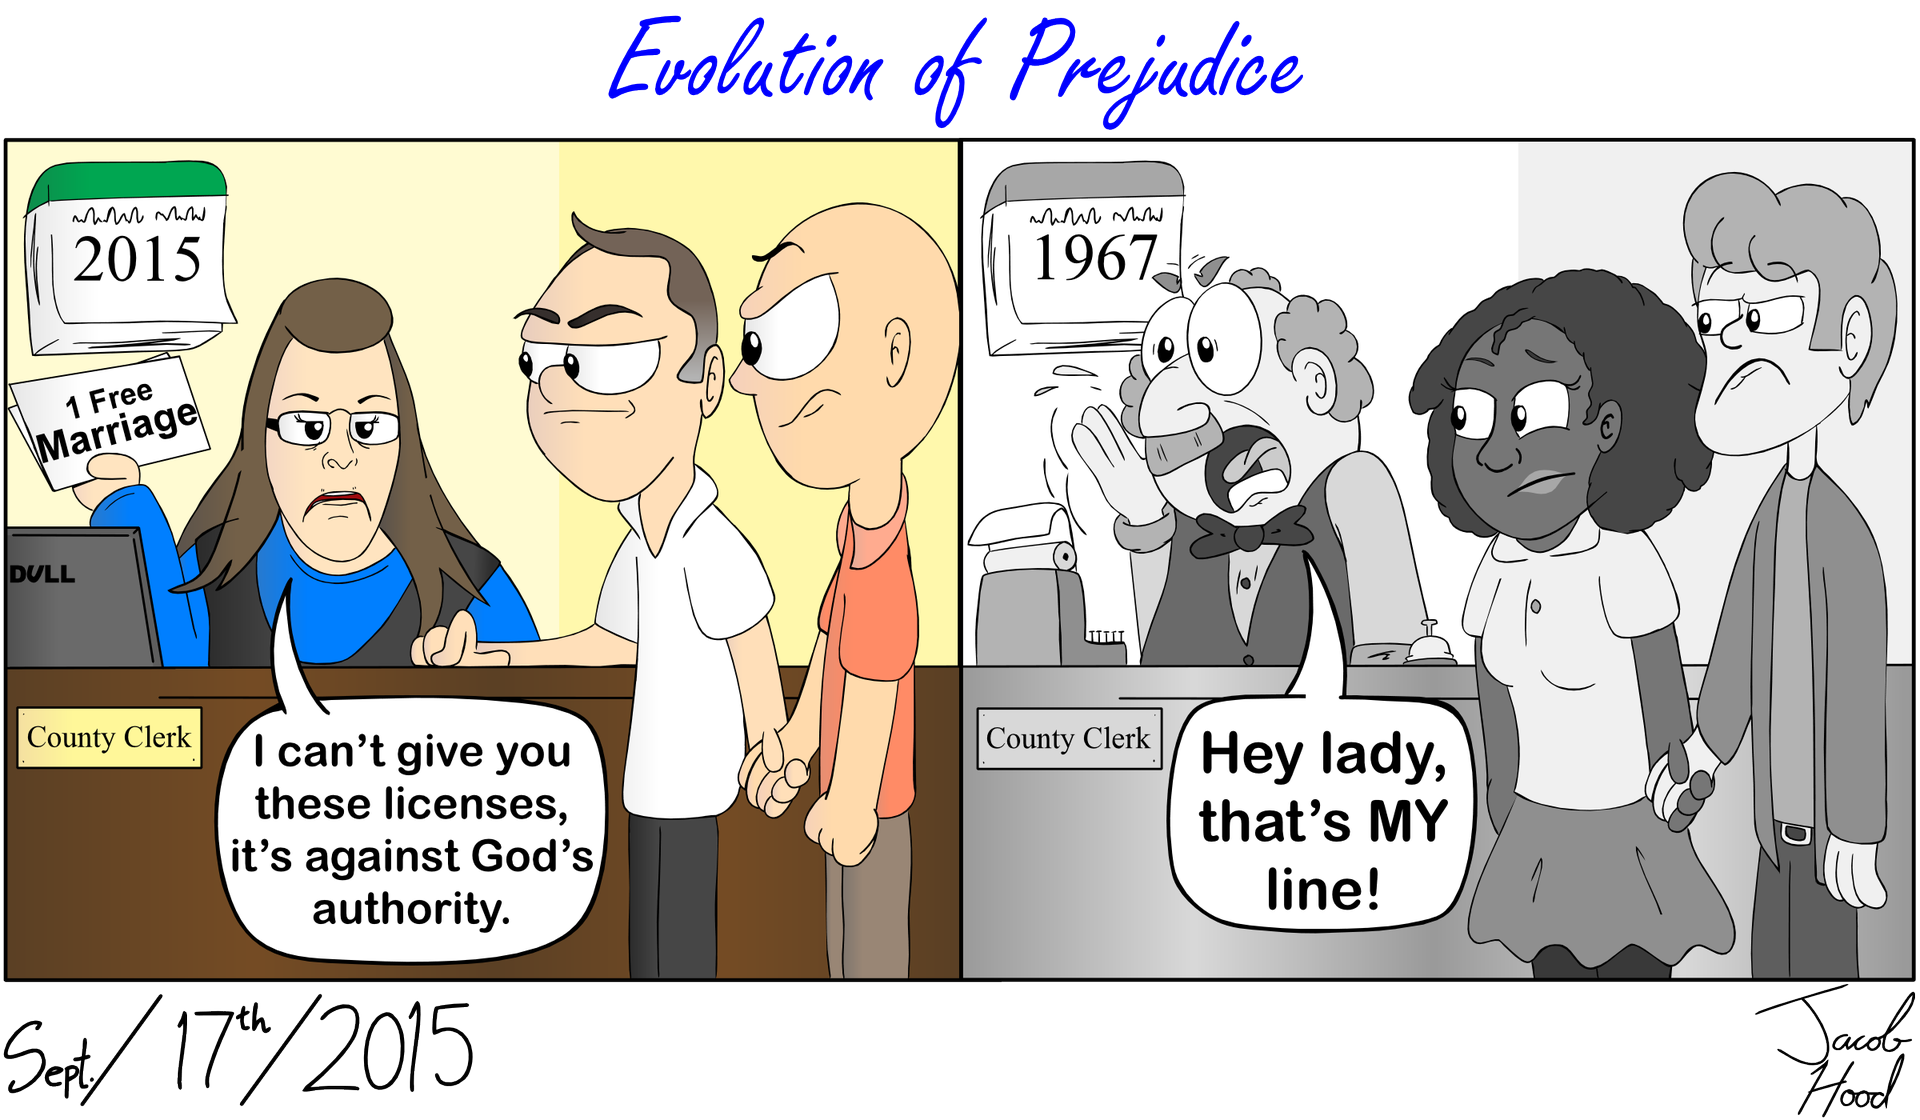 Evolution of Prejudice